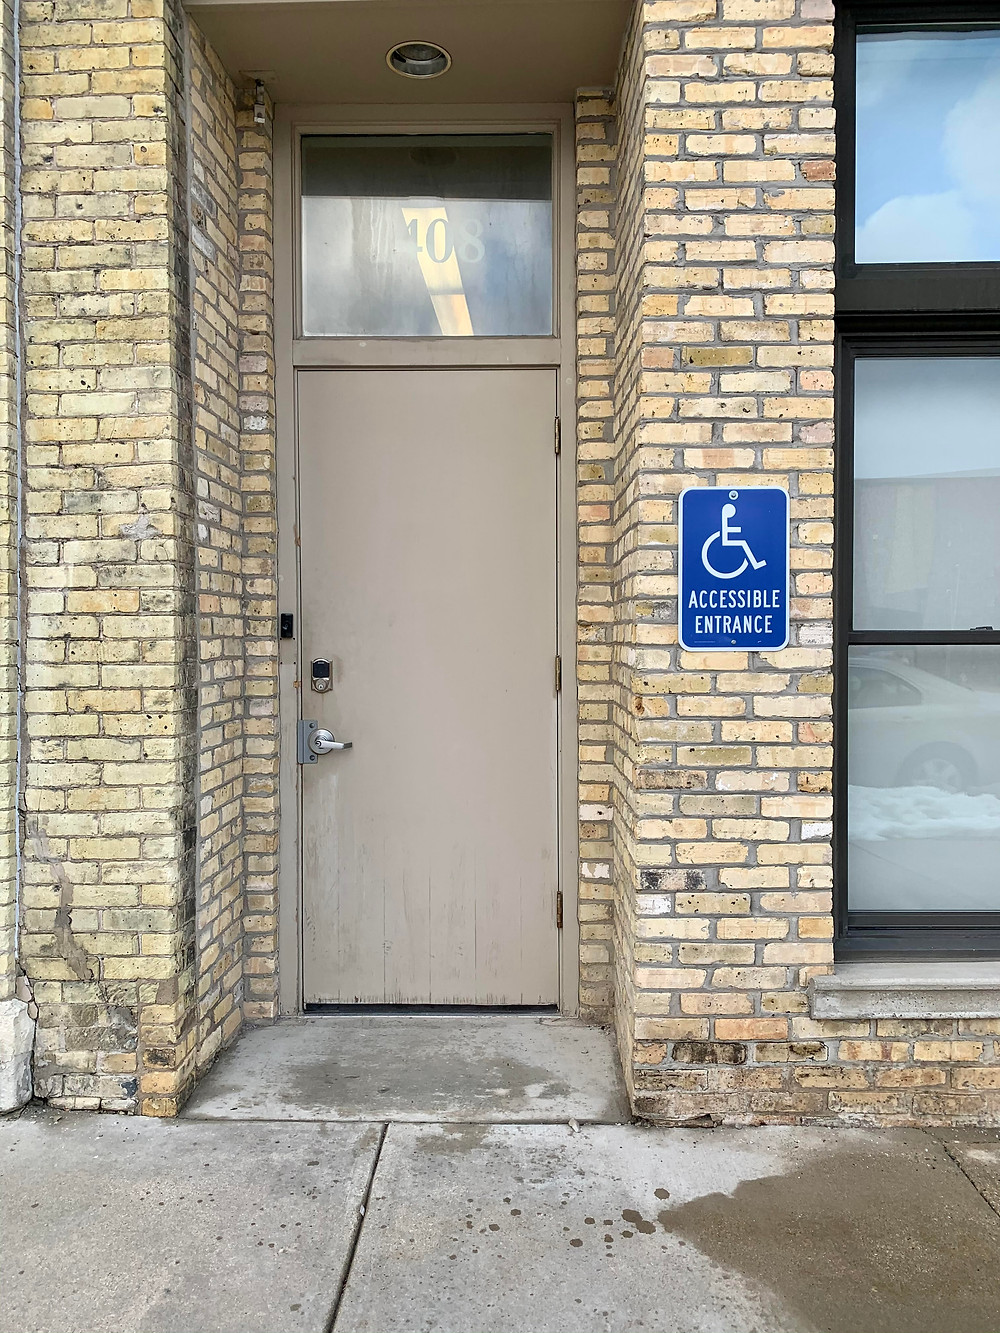 Image description: Accessible entrance at AWP Campus (door is located at 1408 N. 5th St.).